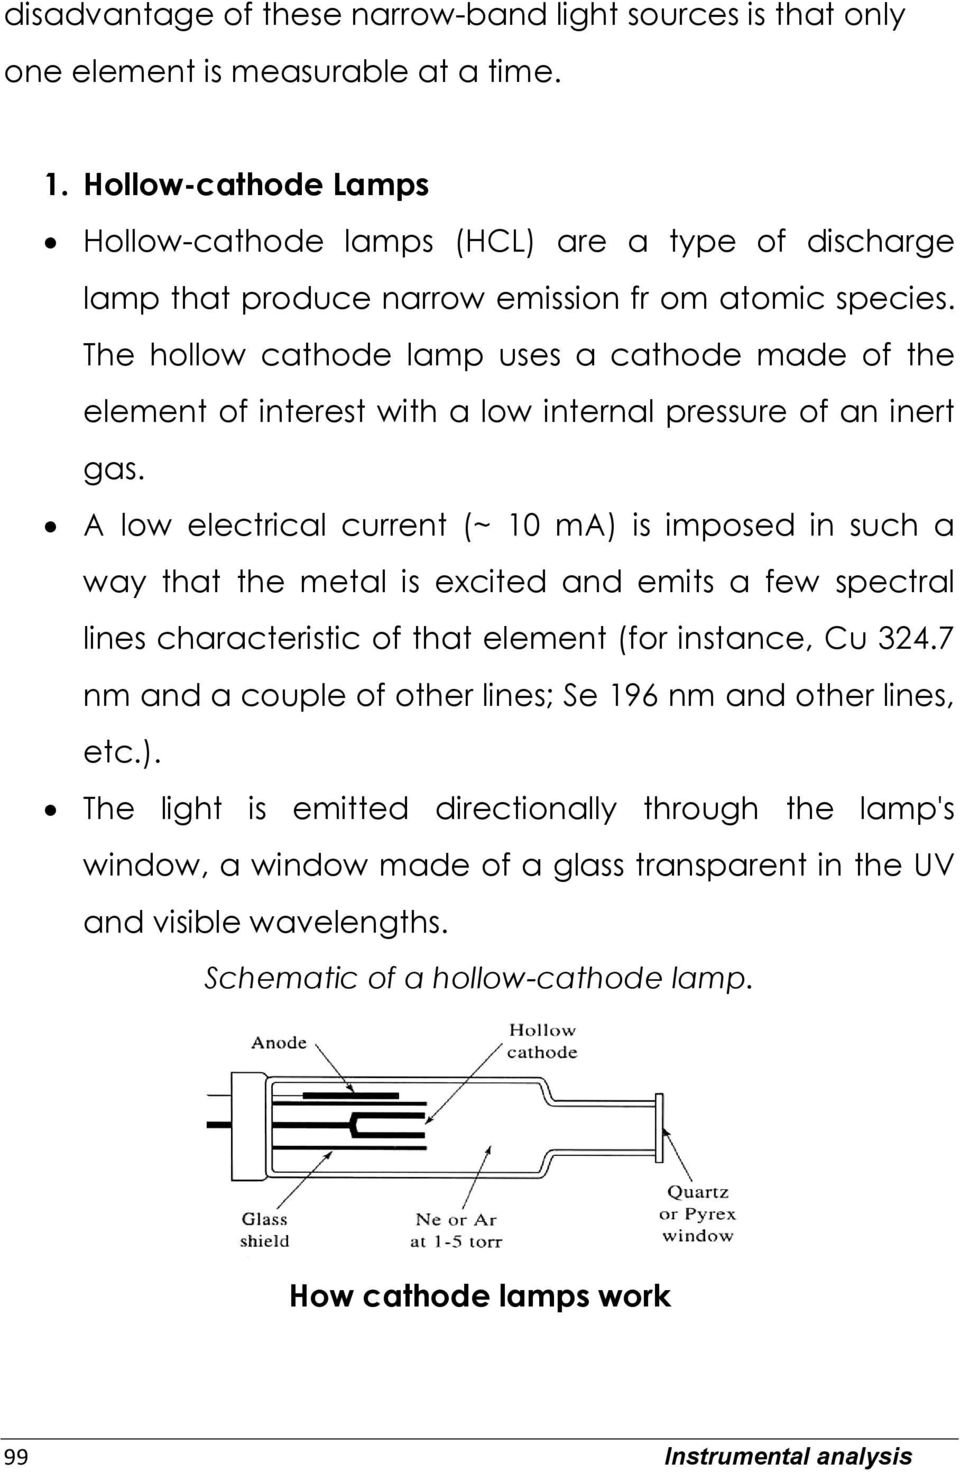 The hollow cathode lamp uses a cathode made of the element of interest with a low internal pressure of an inert gas.